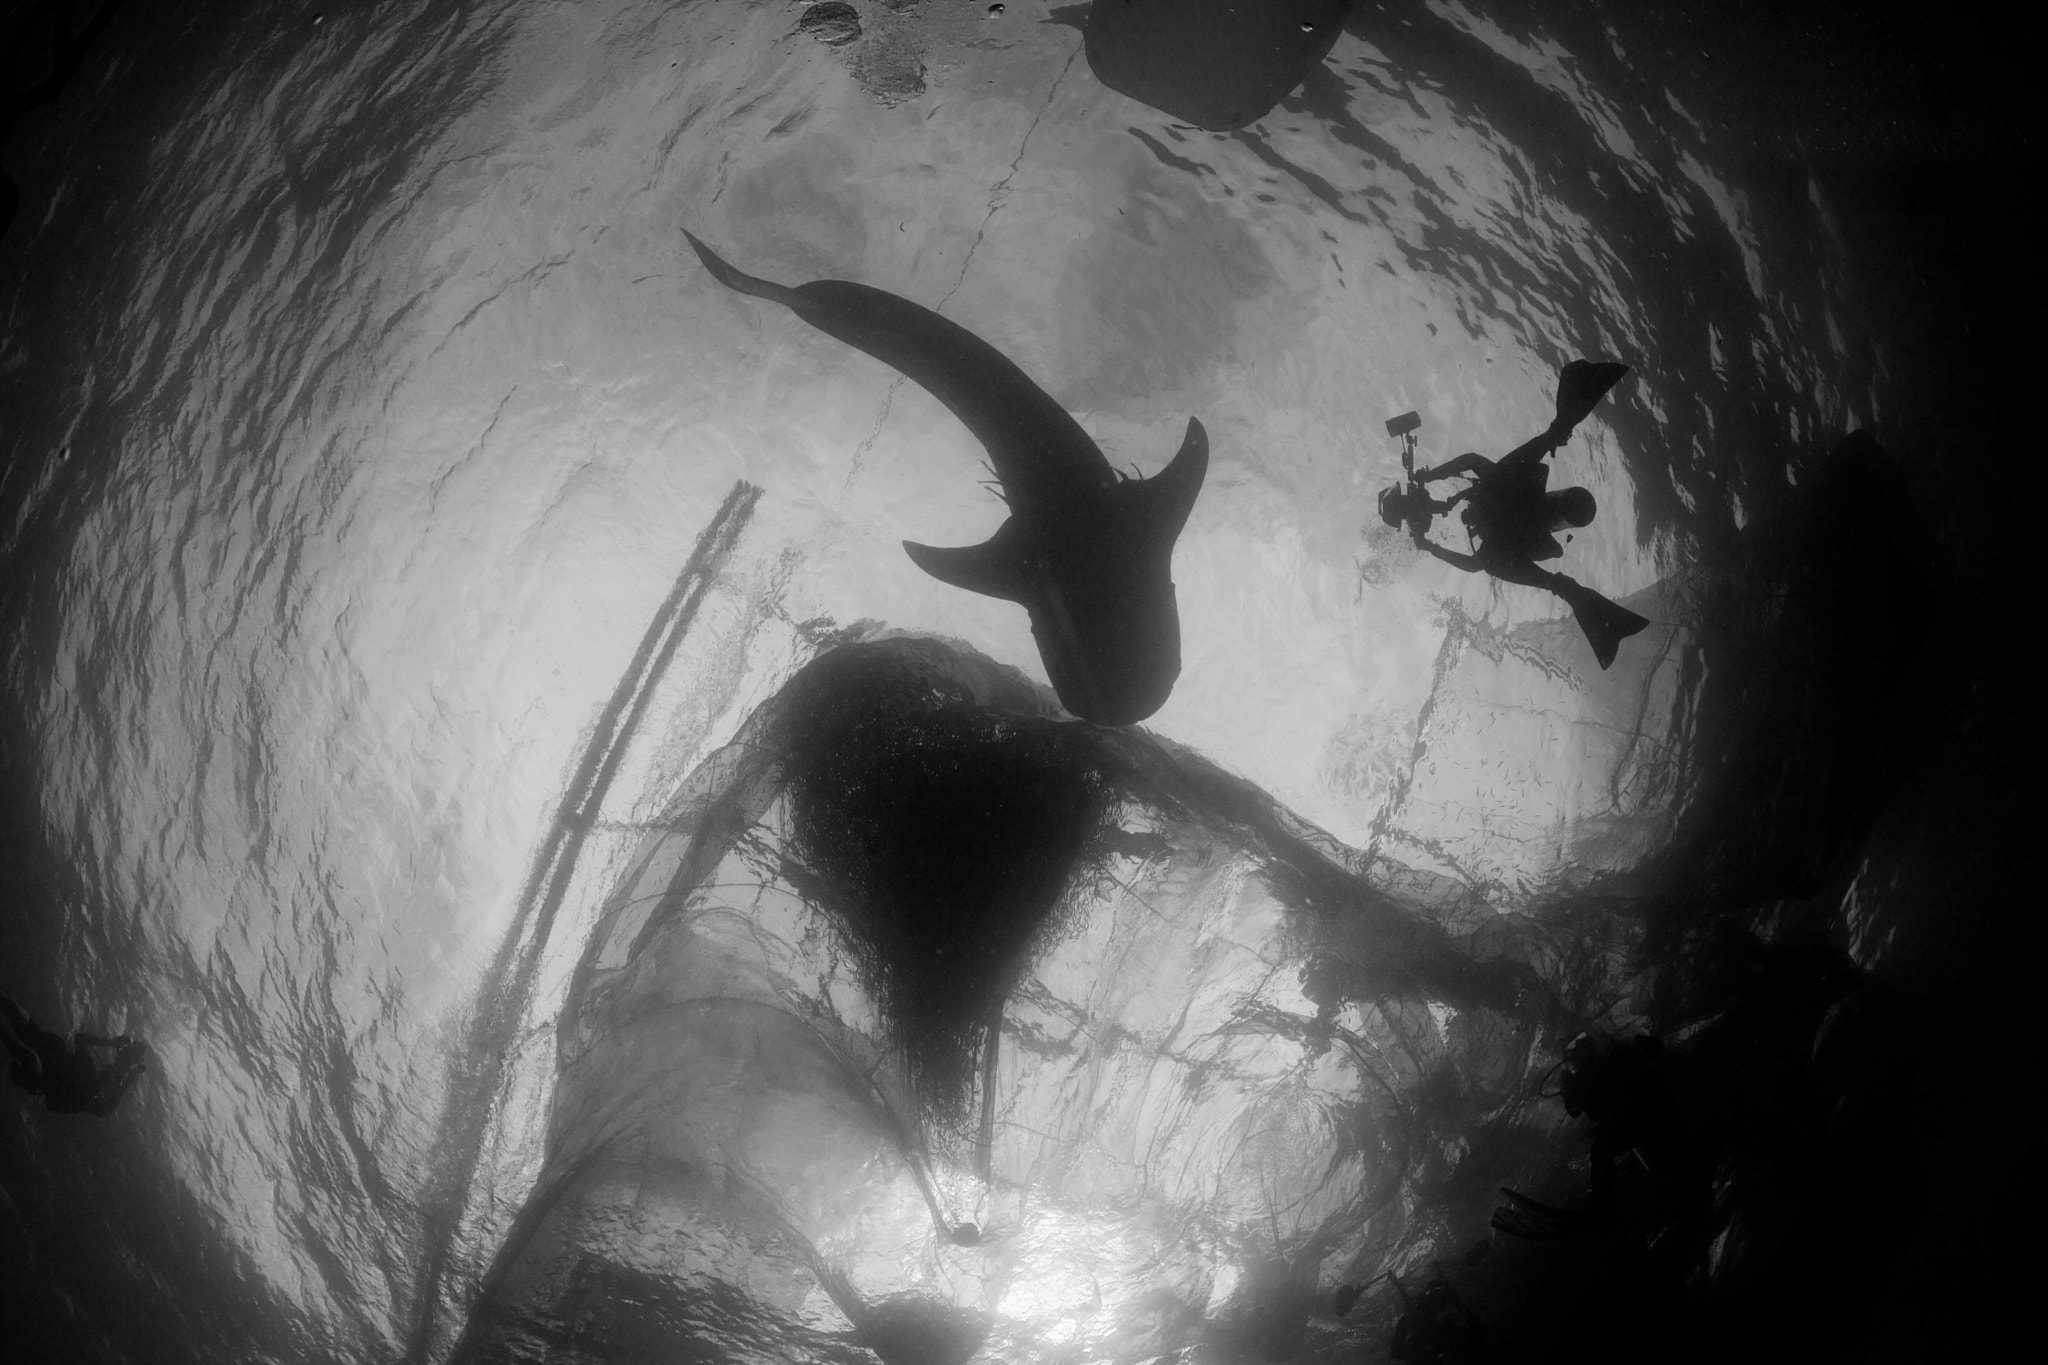 Photograph whale shark and photographer silhouette by Paul Cowell on 500px